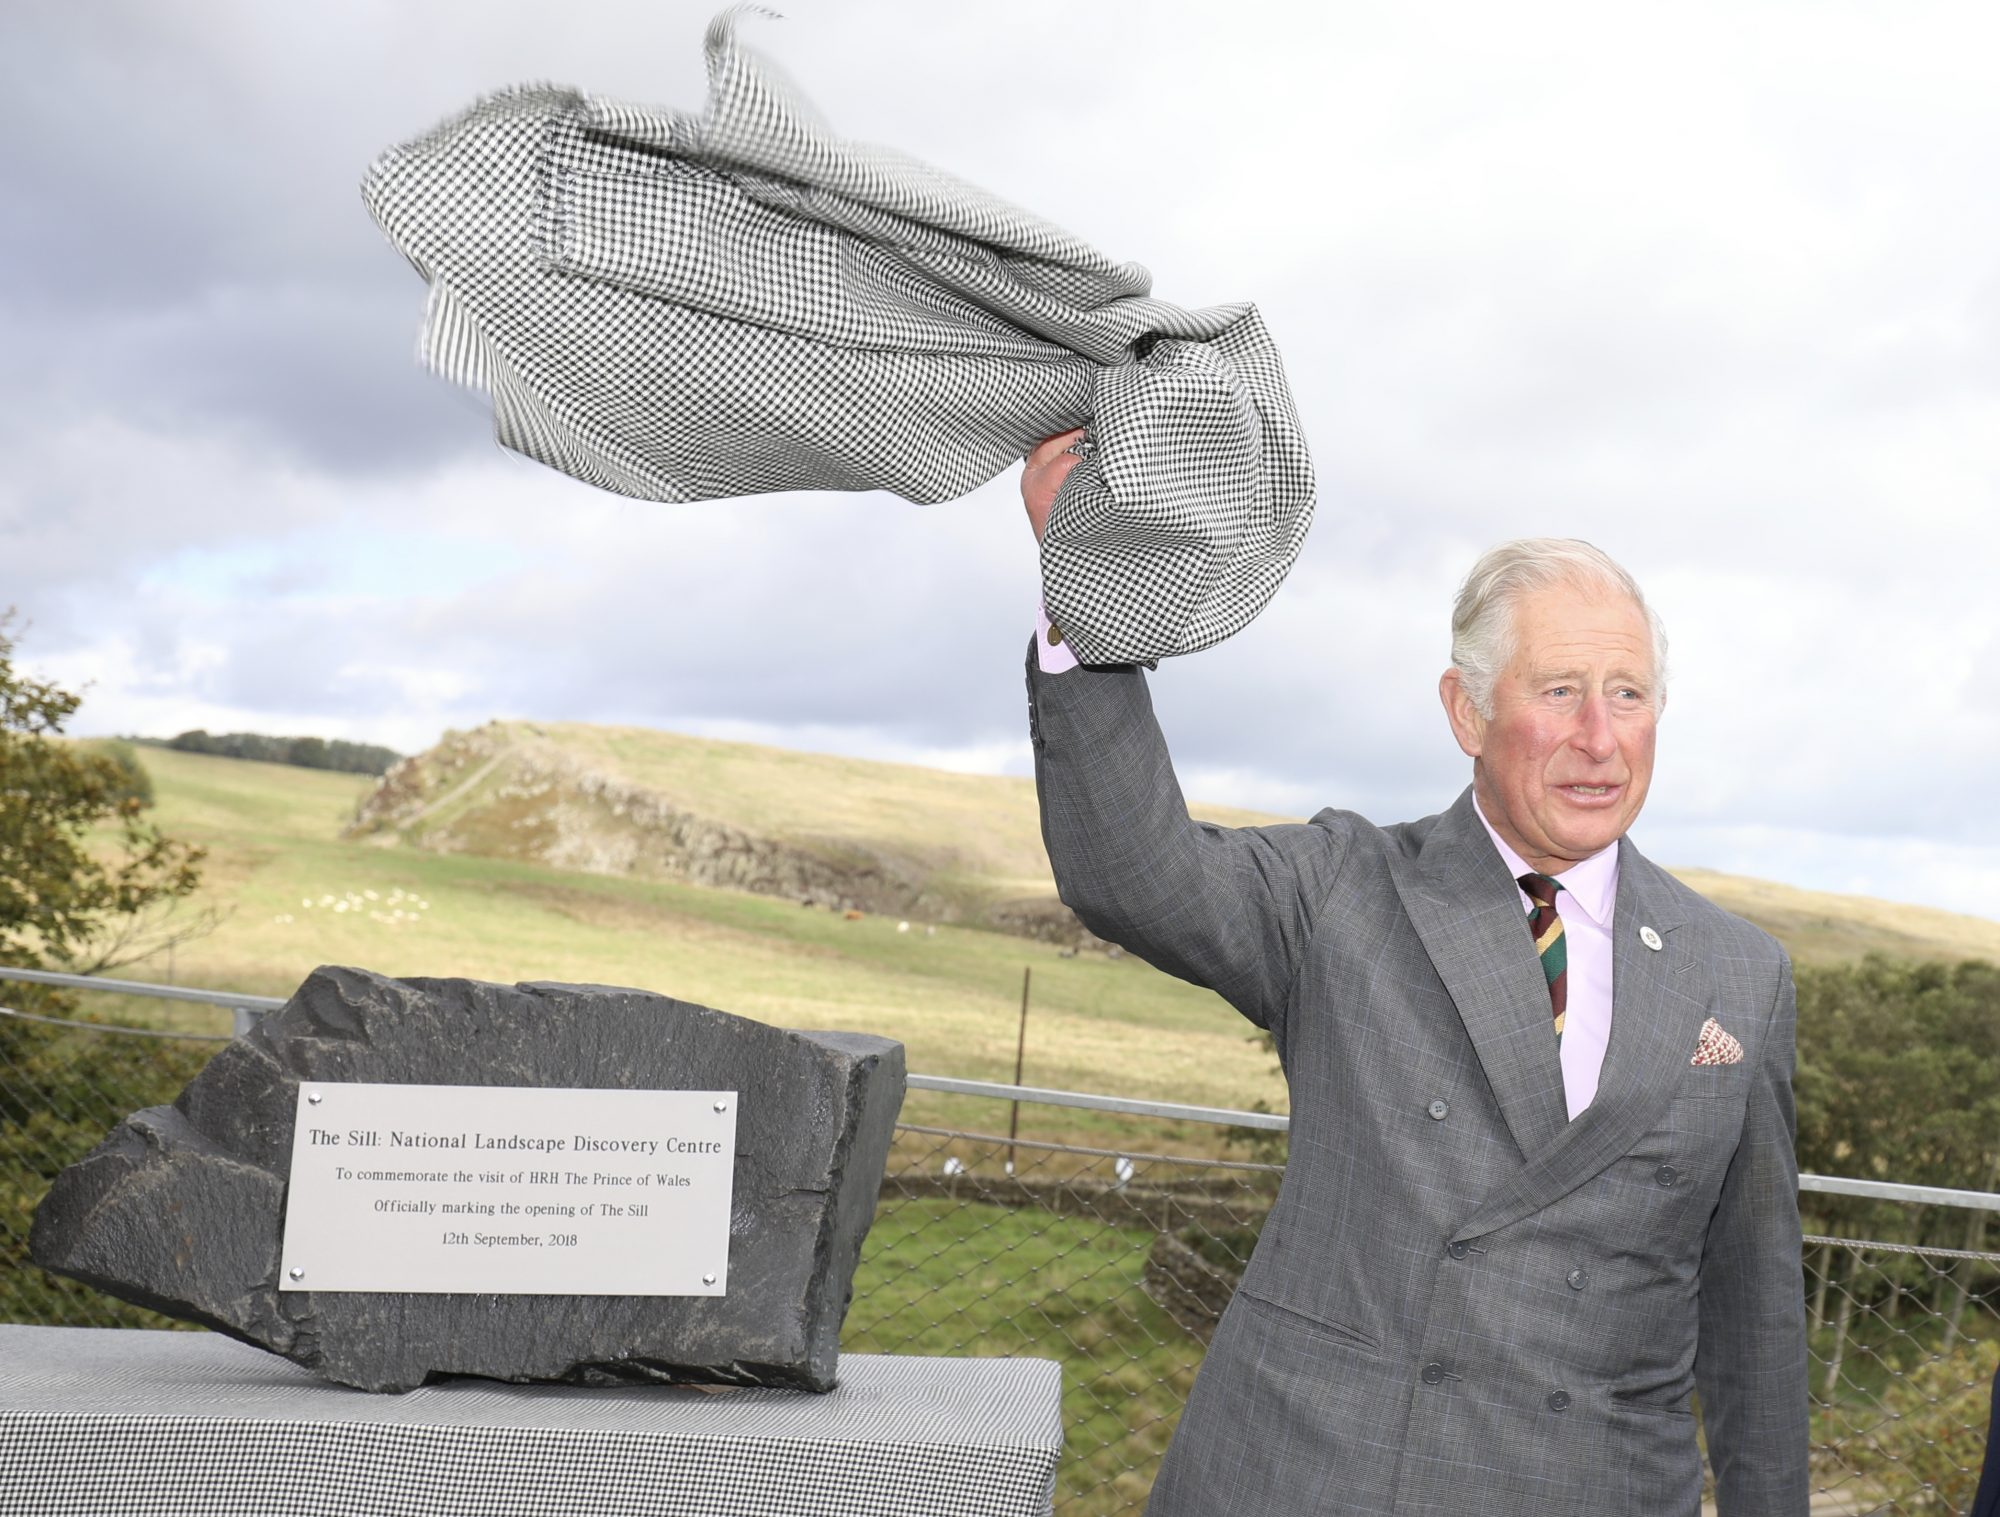 1.) To mark his visit, The Prince of Wales unveiled a commemorative stone on the roof of The Sill: Landscape National Discovery Centre.